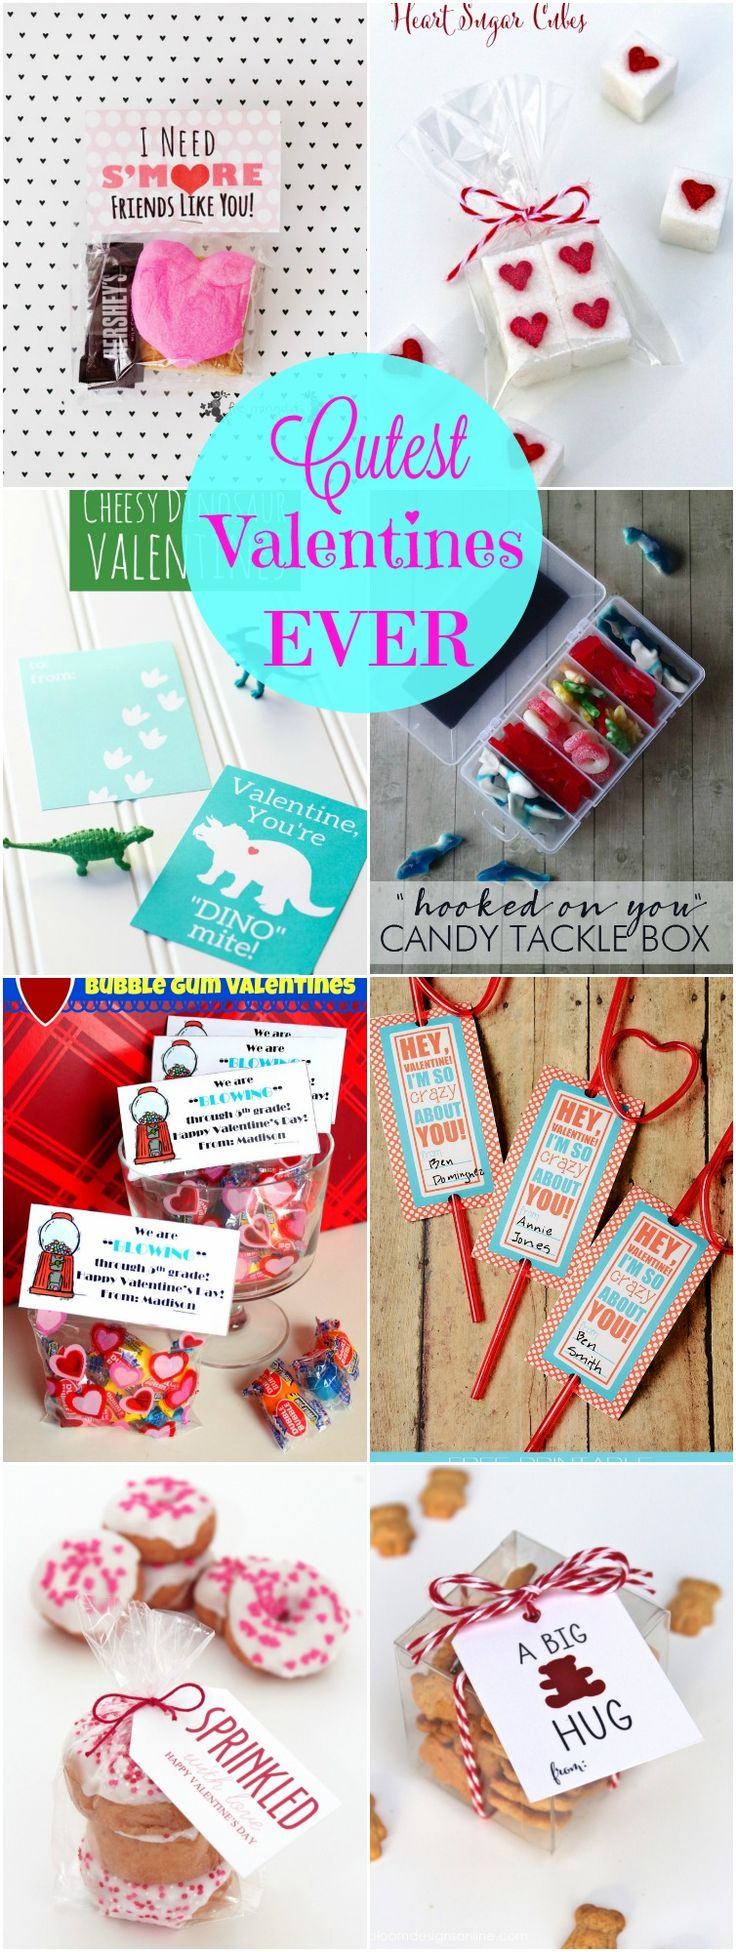 Cutest Valentines EVER with free printables